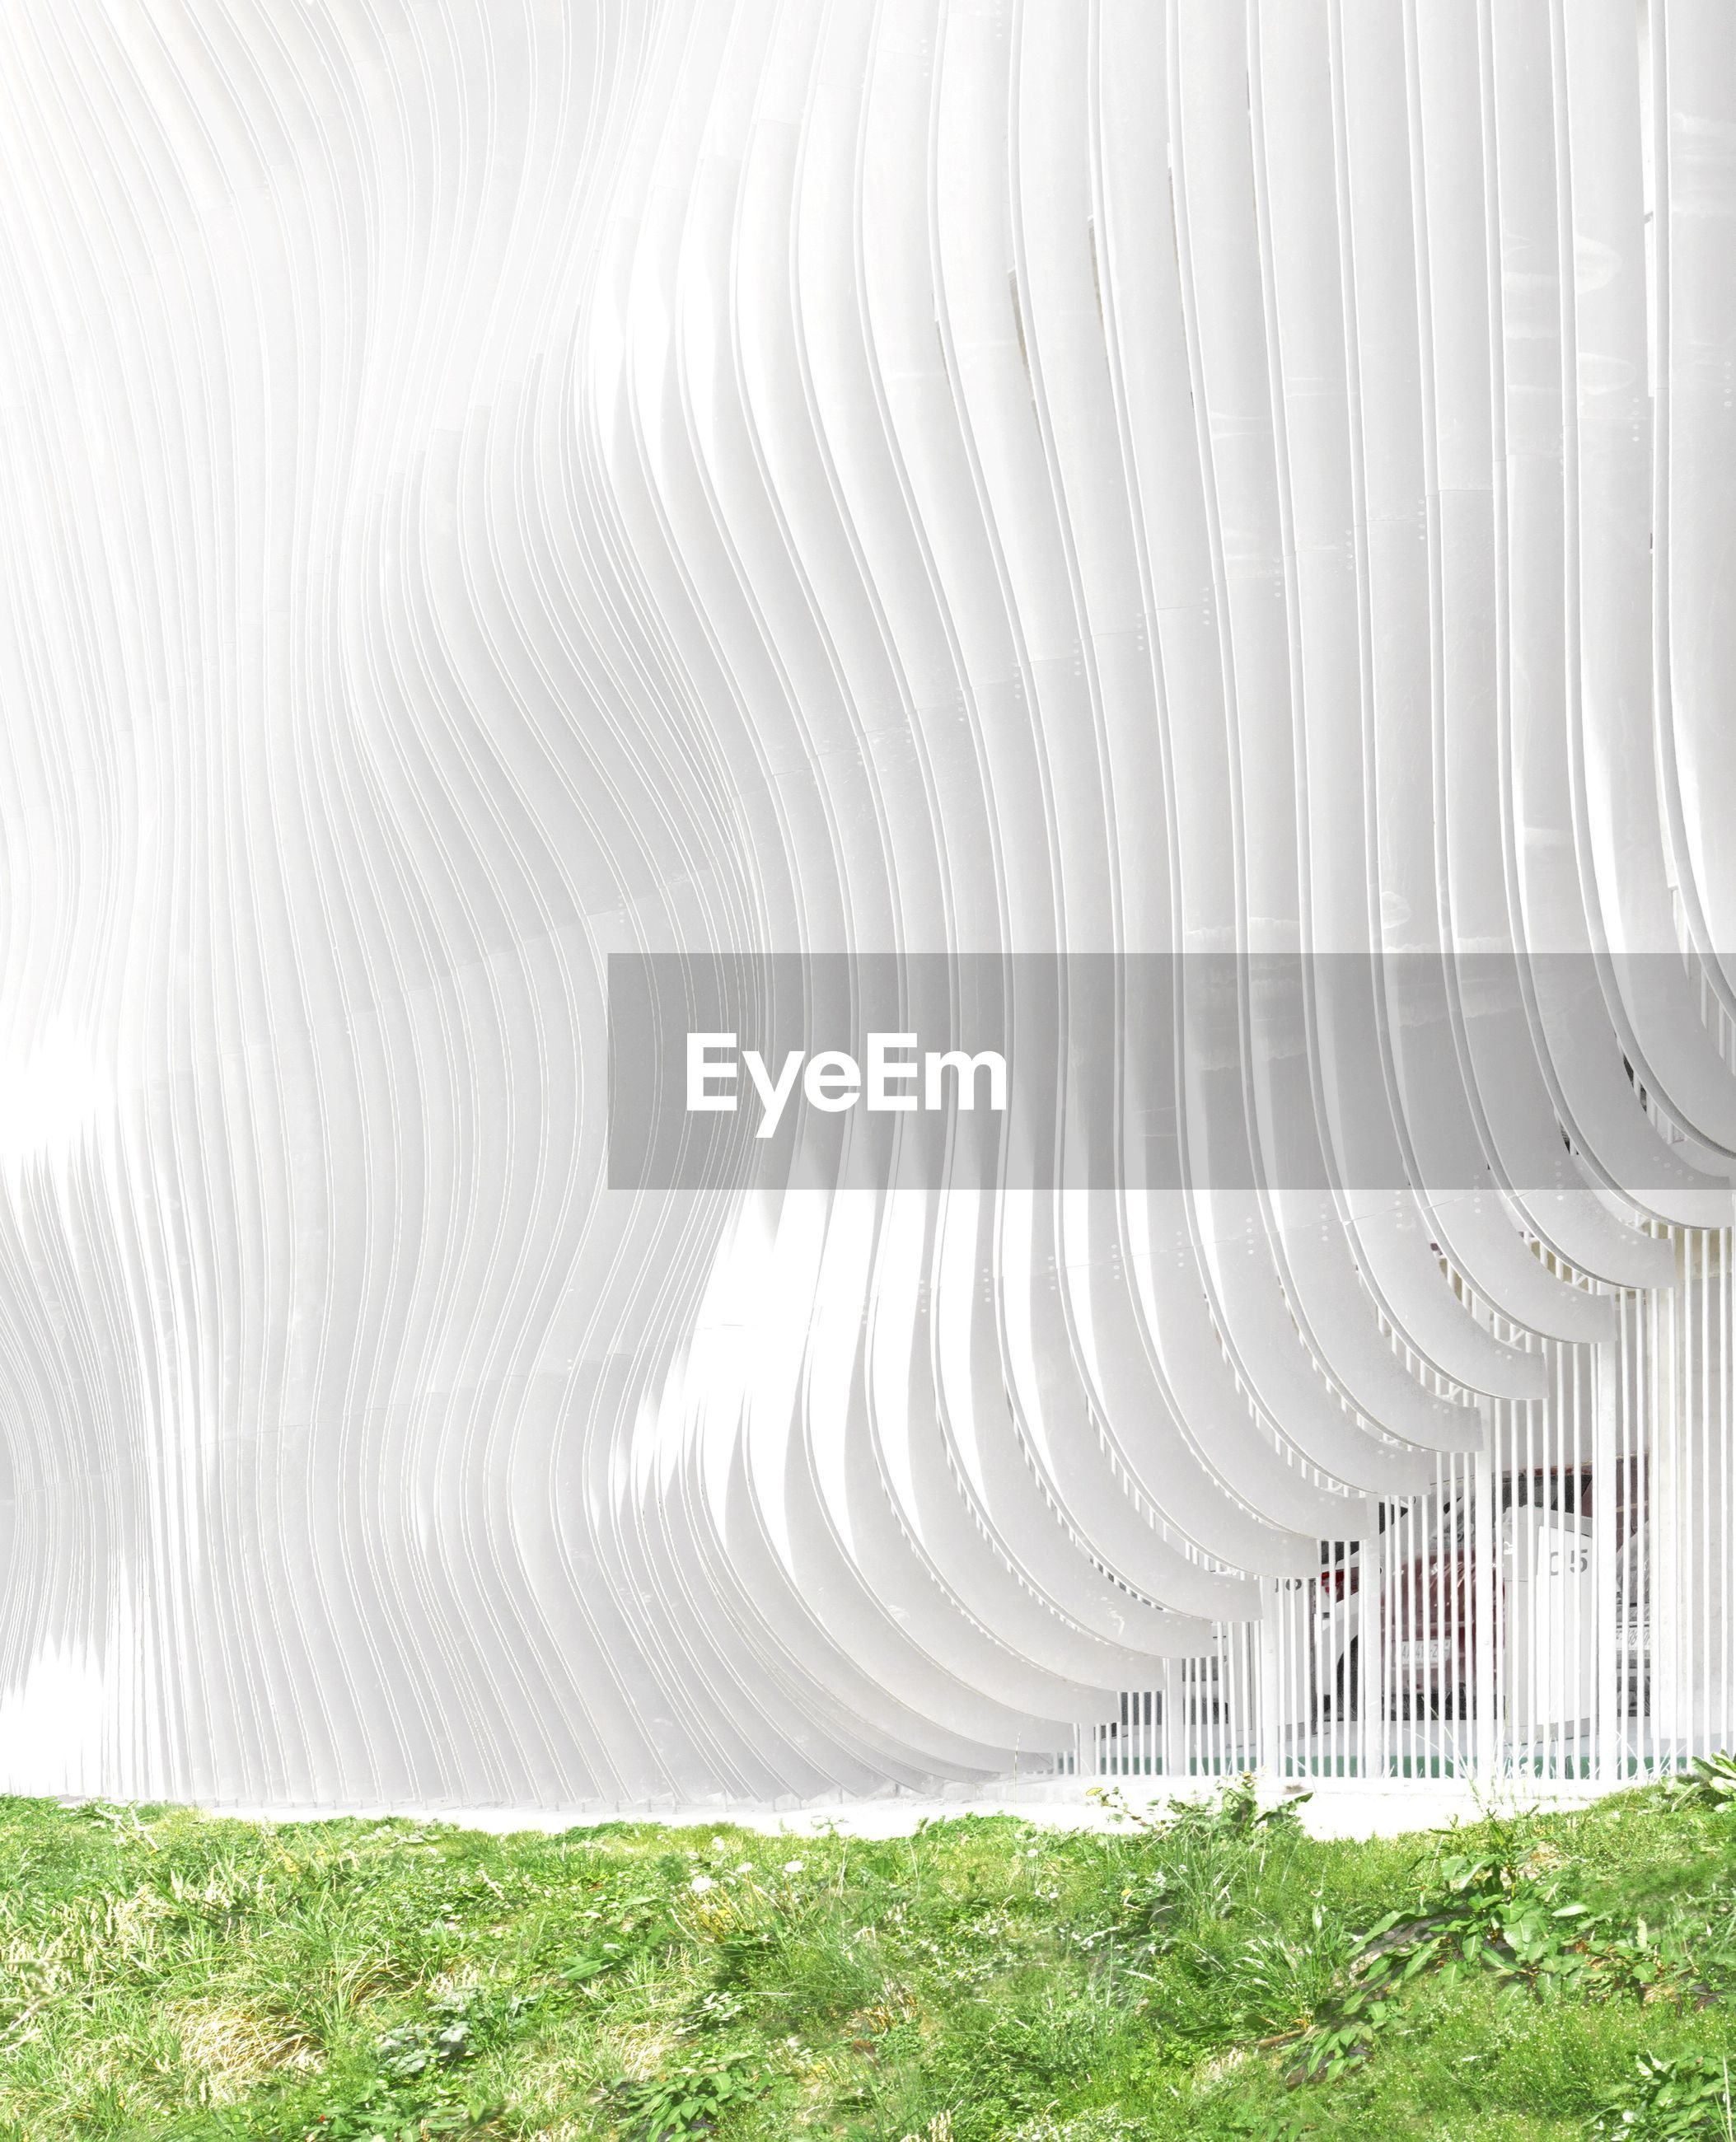 curve, pipe - tube, no people, futuristic, grass, day, outdoors